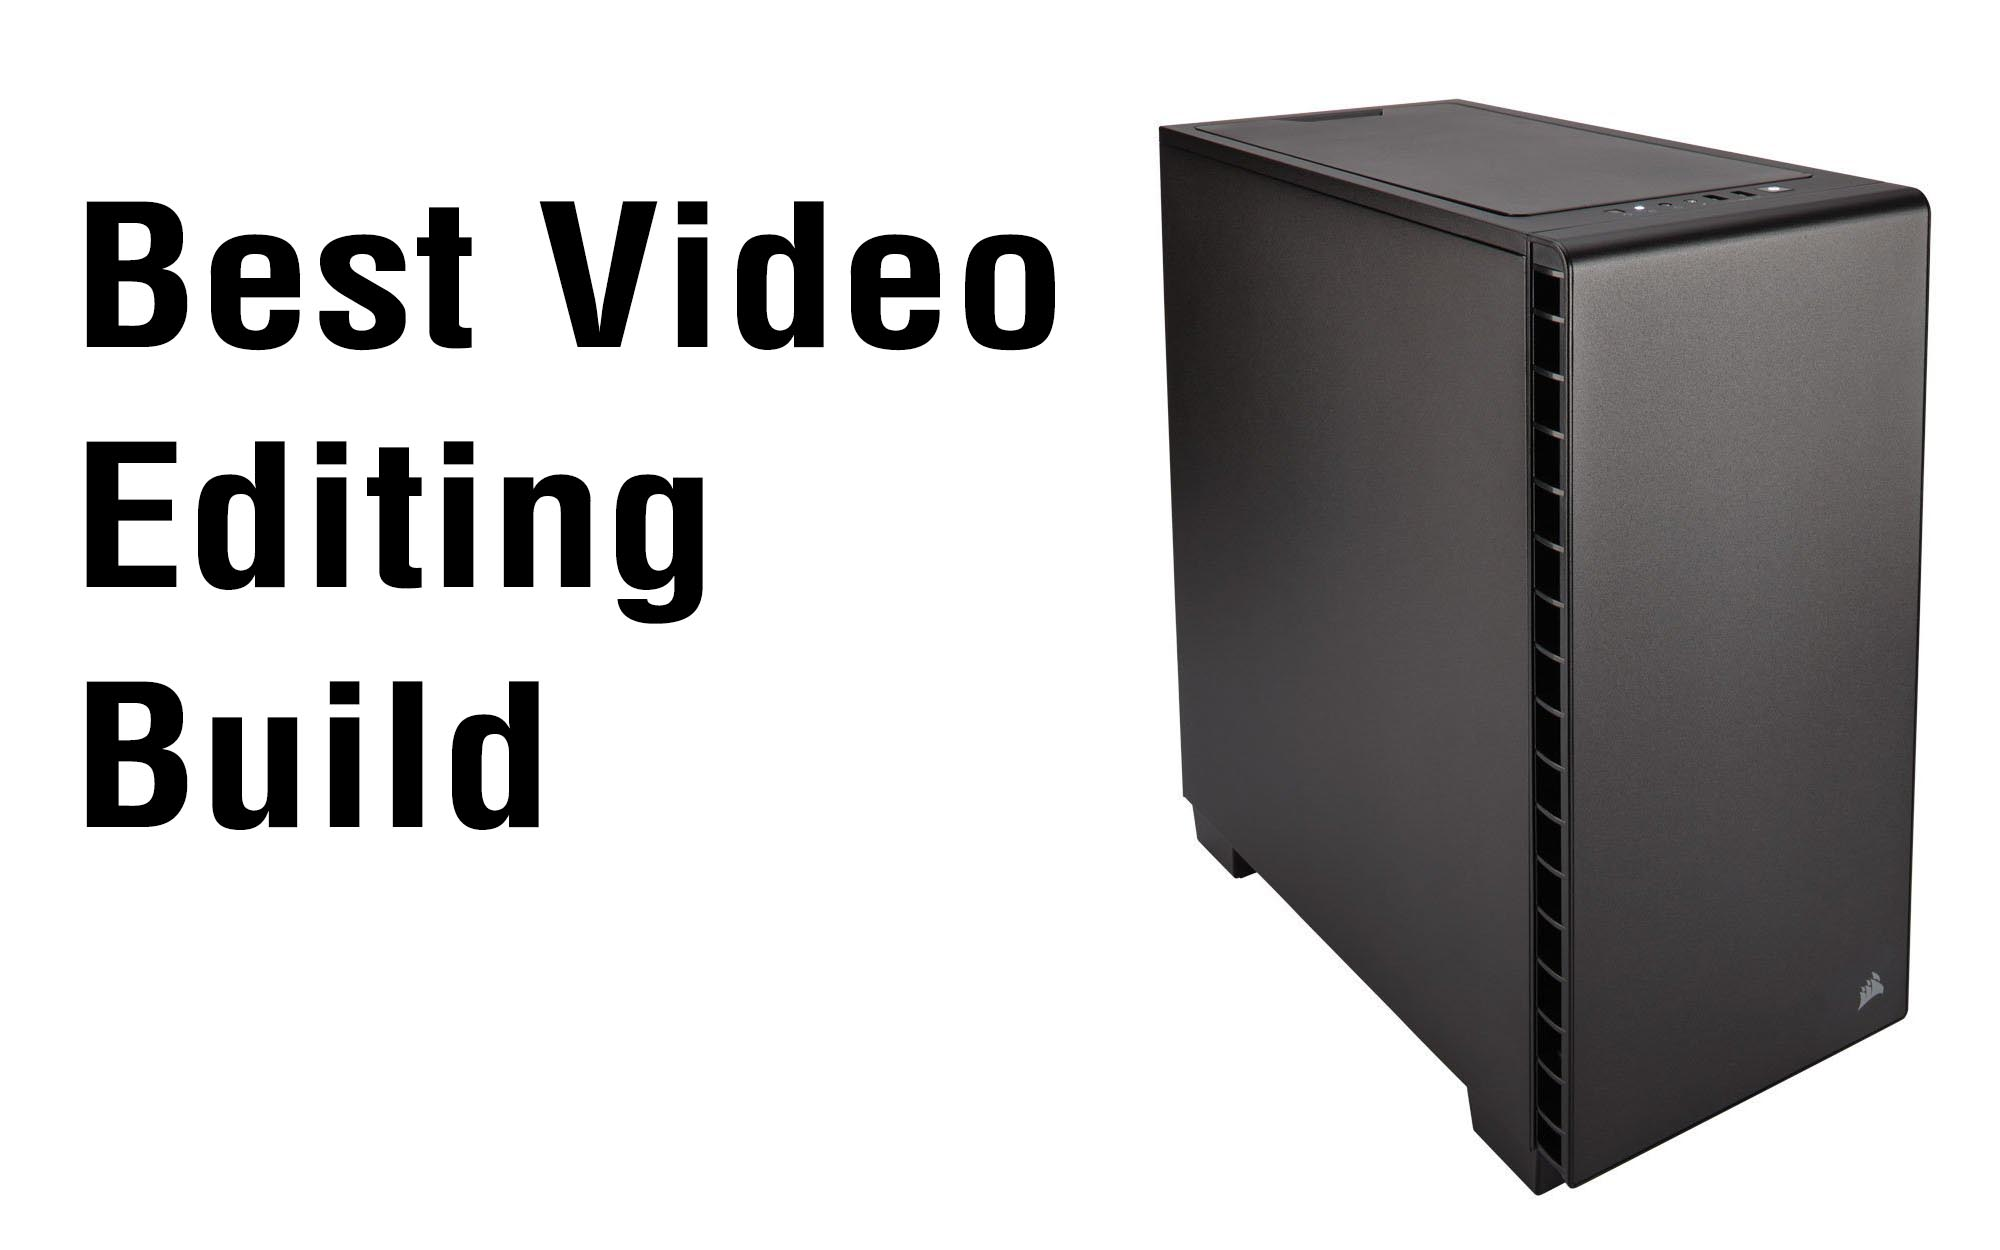 The Best Video Editing PC Builds of 2019 | Custom PC Review